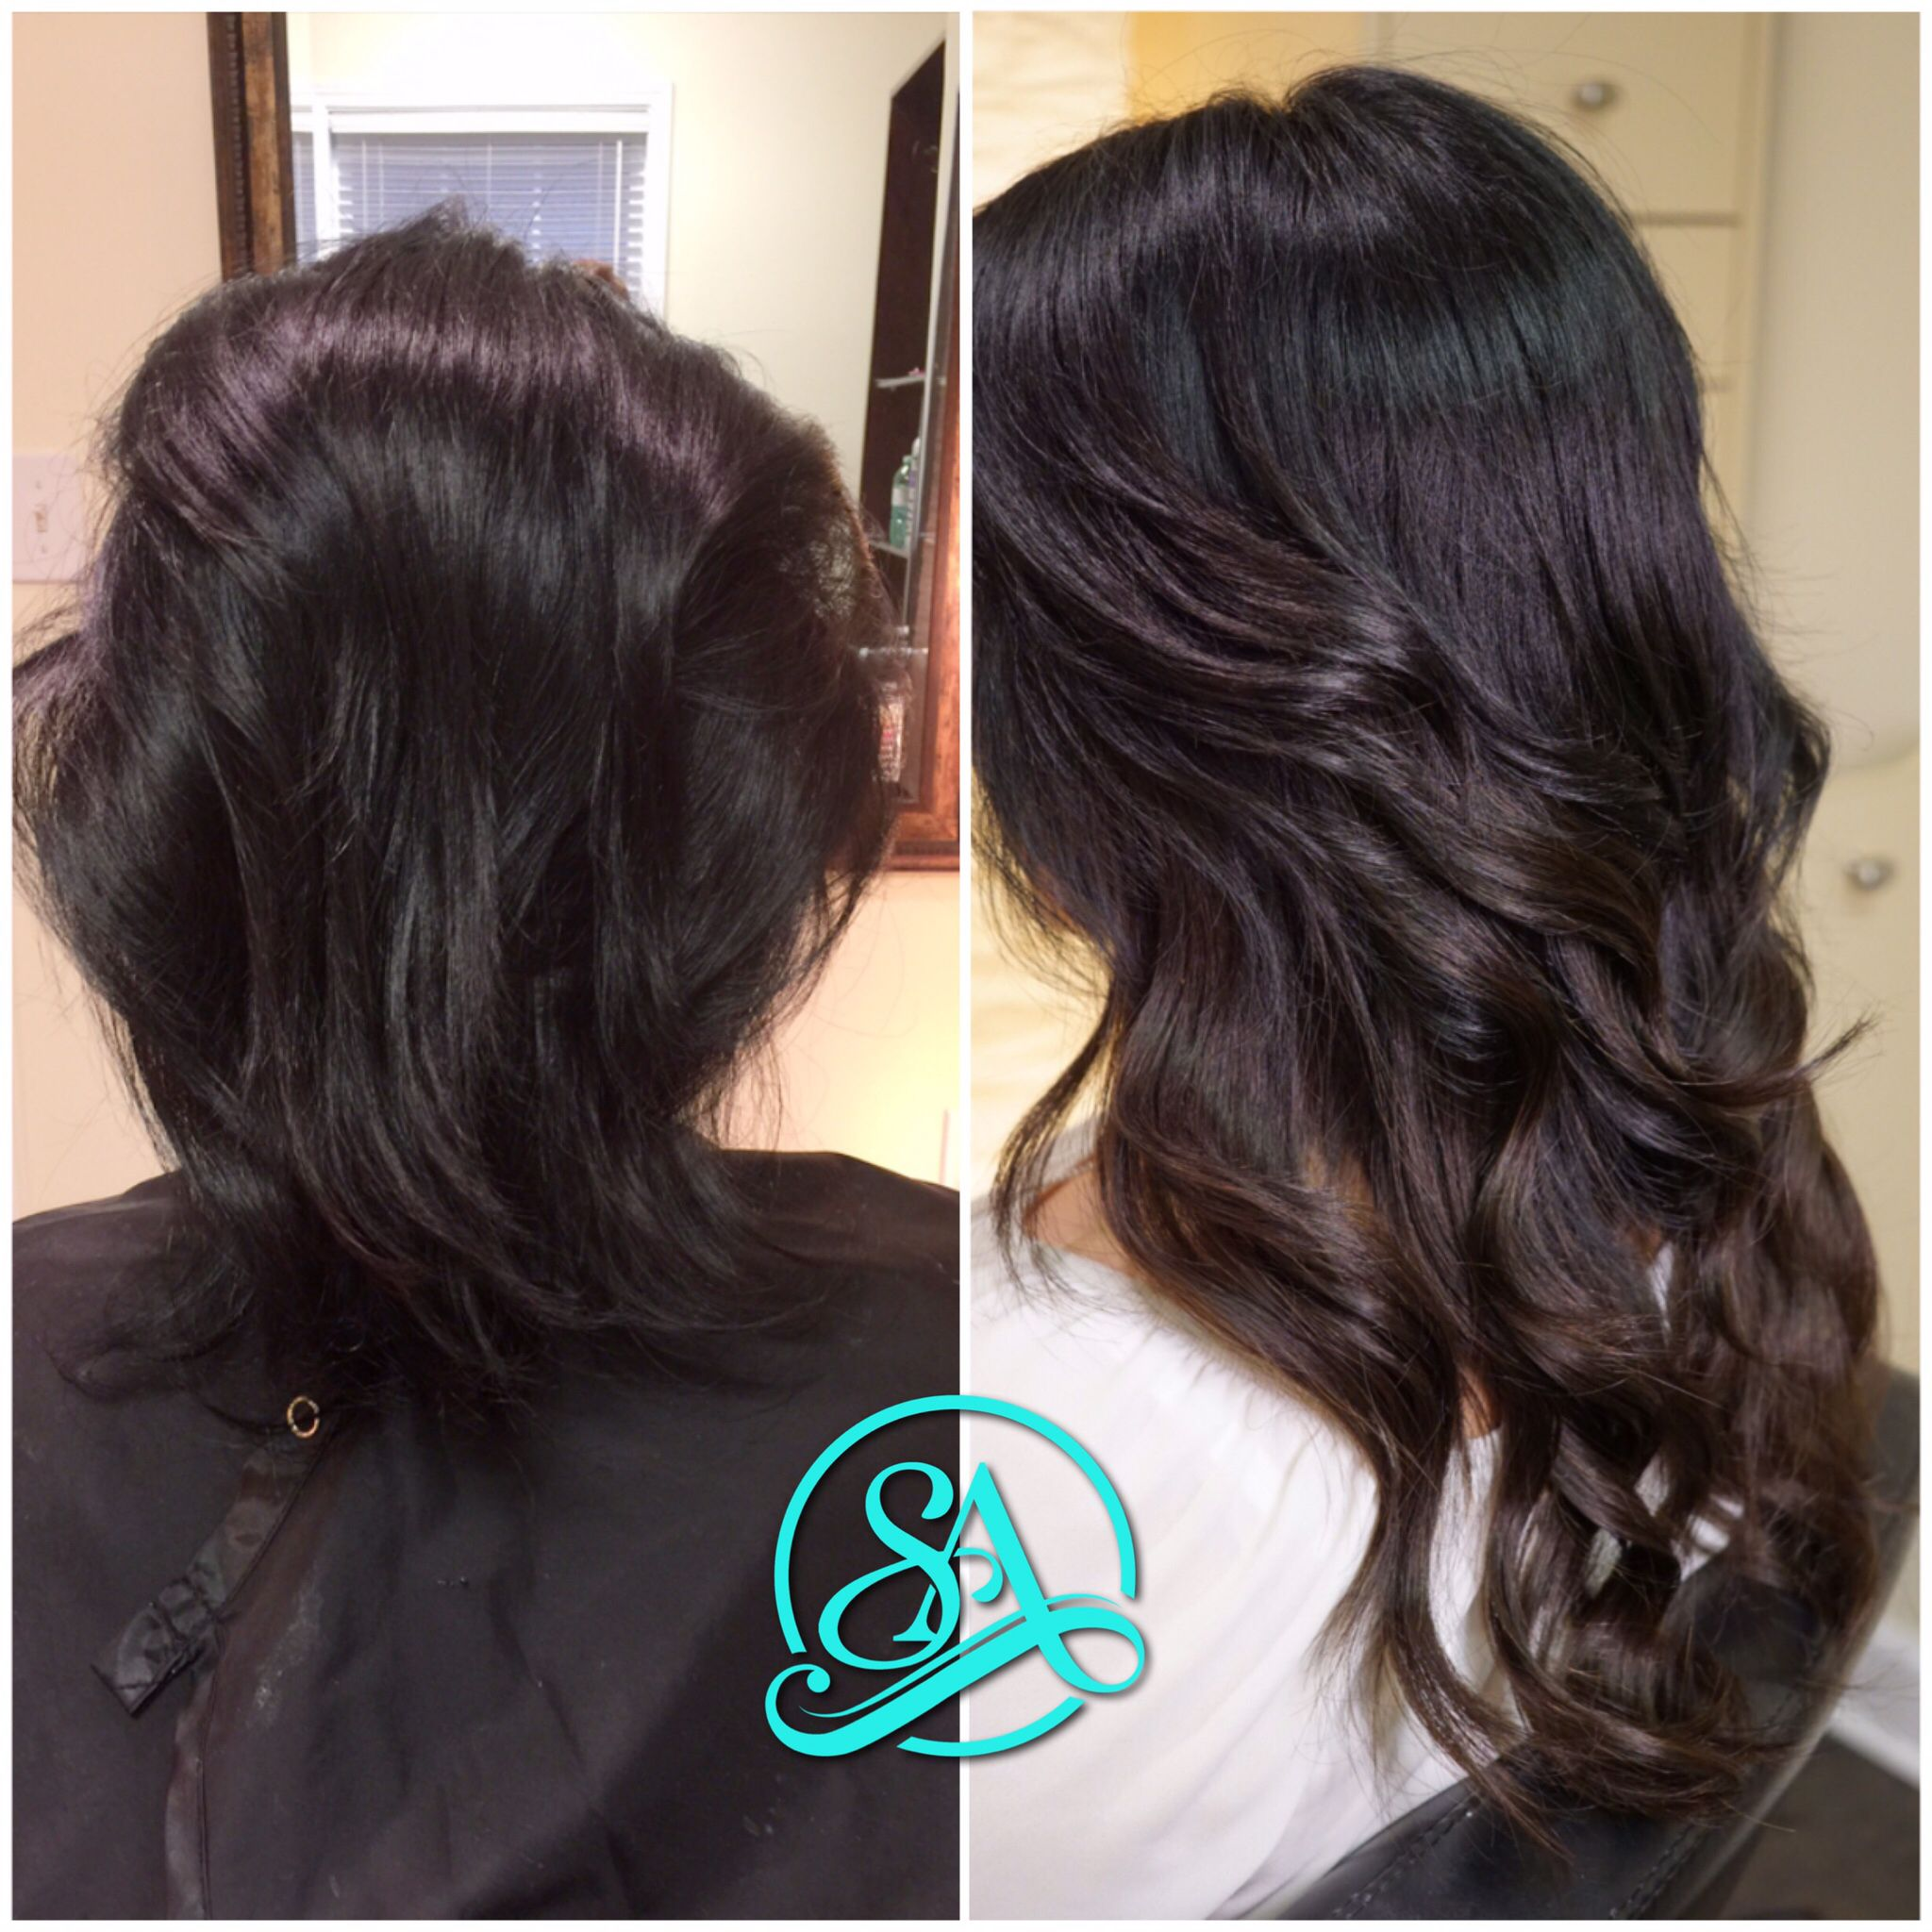 Tape Extensions Greenville Hair Salon Balayage In Greenville